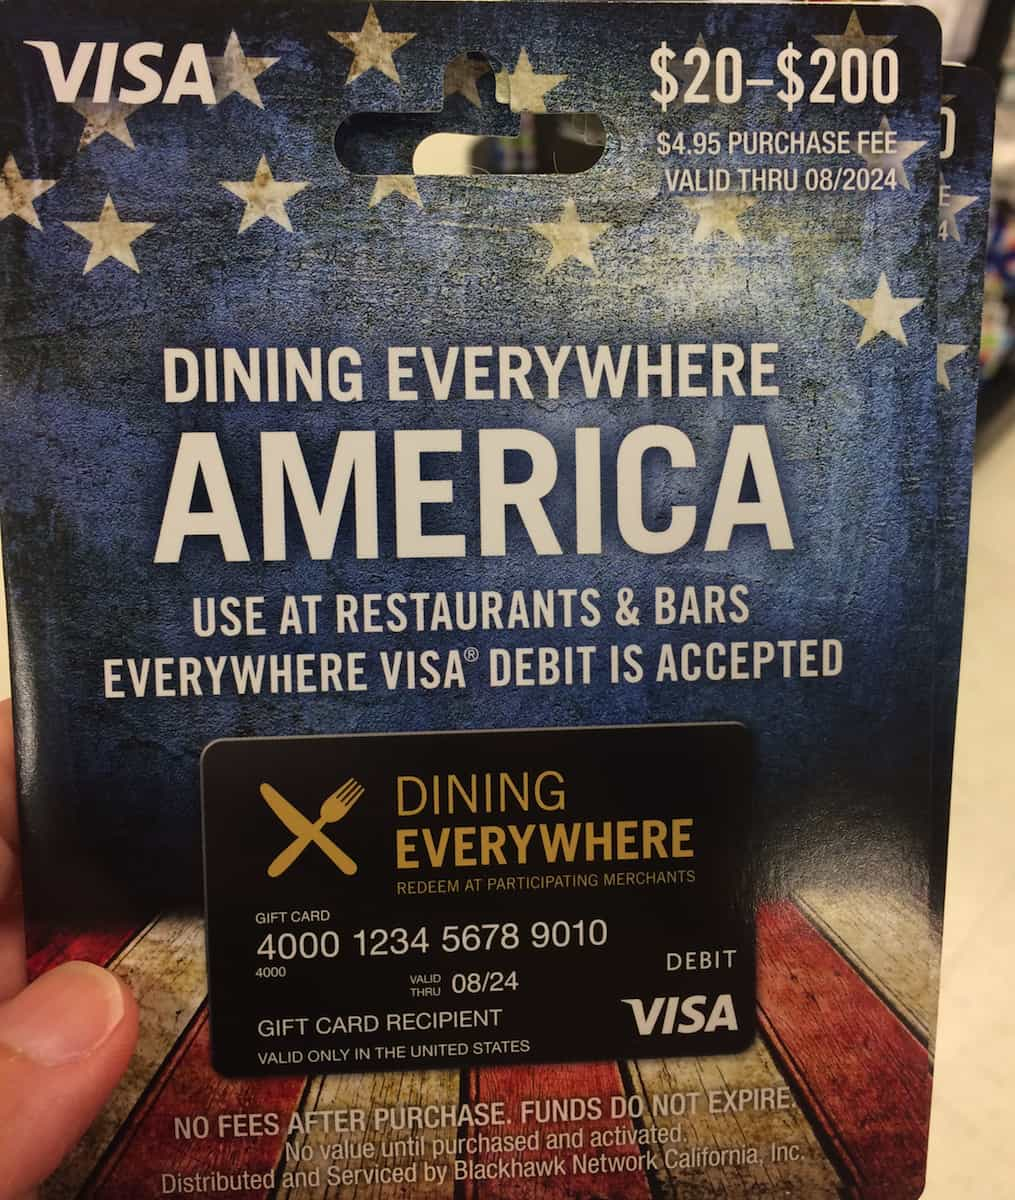 Dining Everywhere Visa